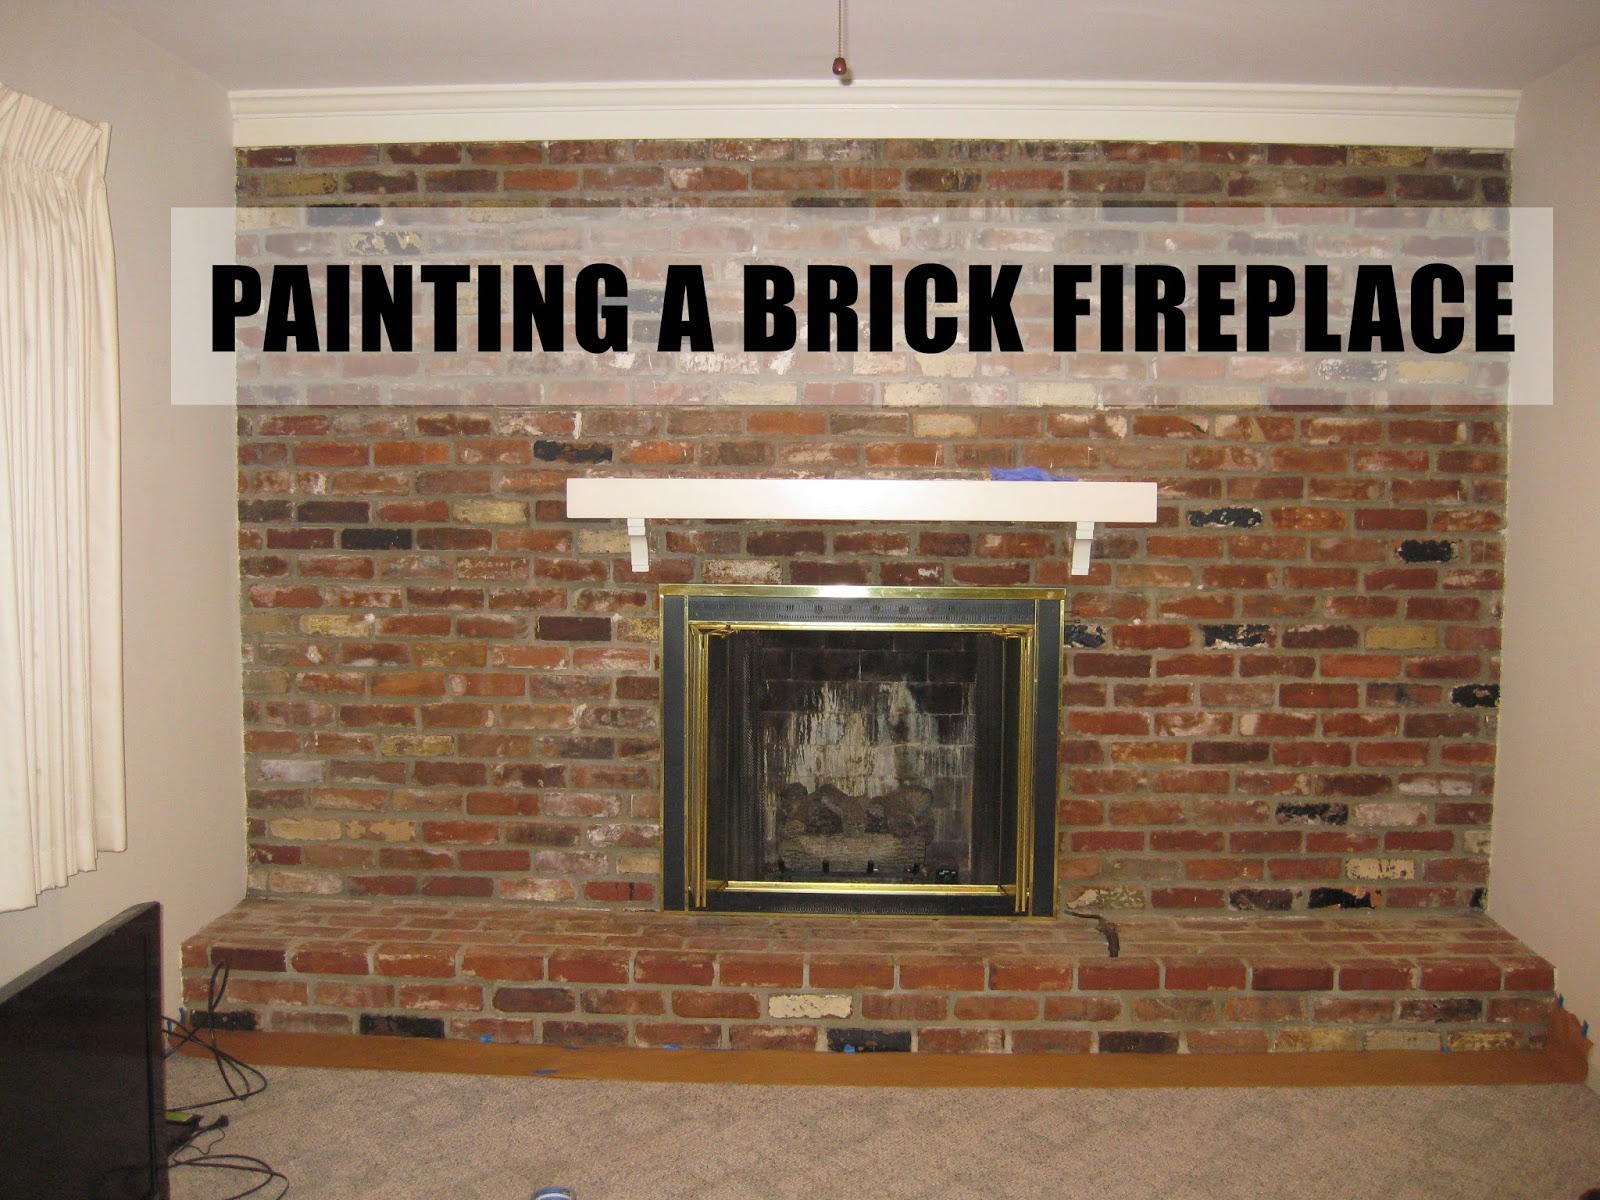 According To Jax Painting A Brick Fireplace